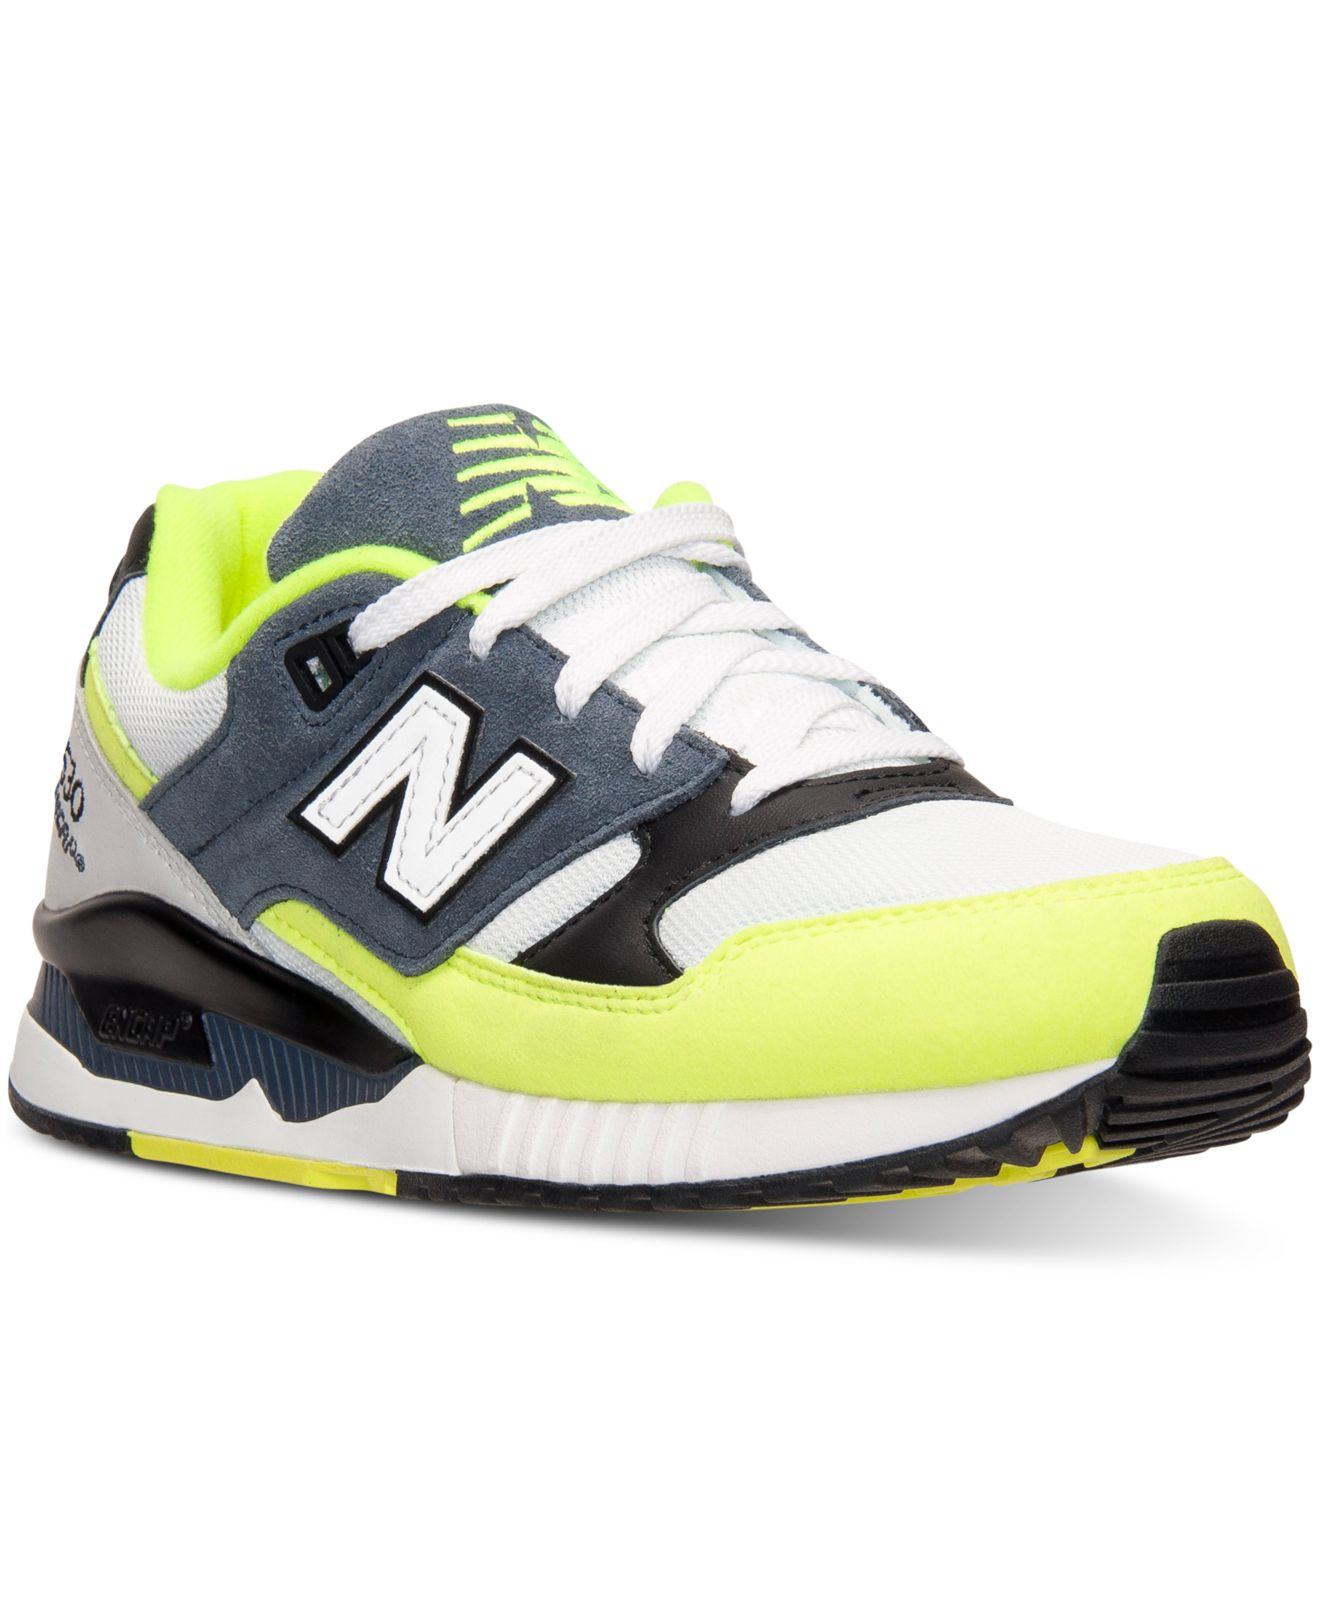 new balance shoes for women 530 90s